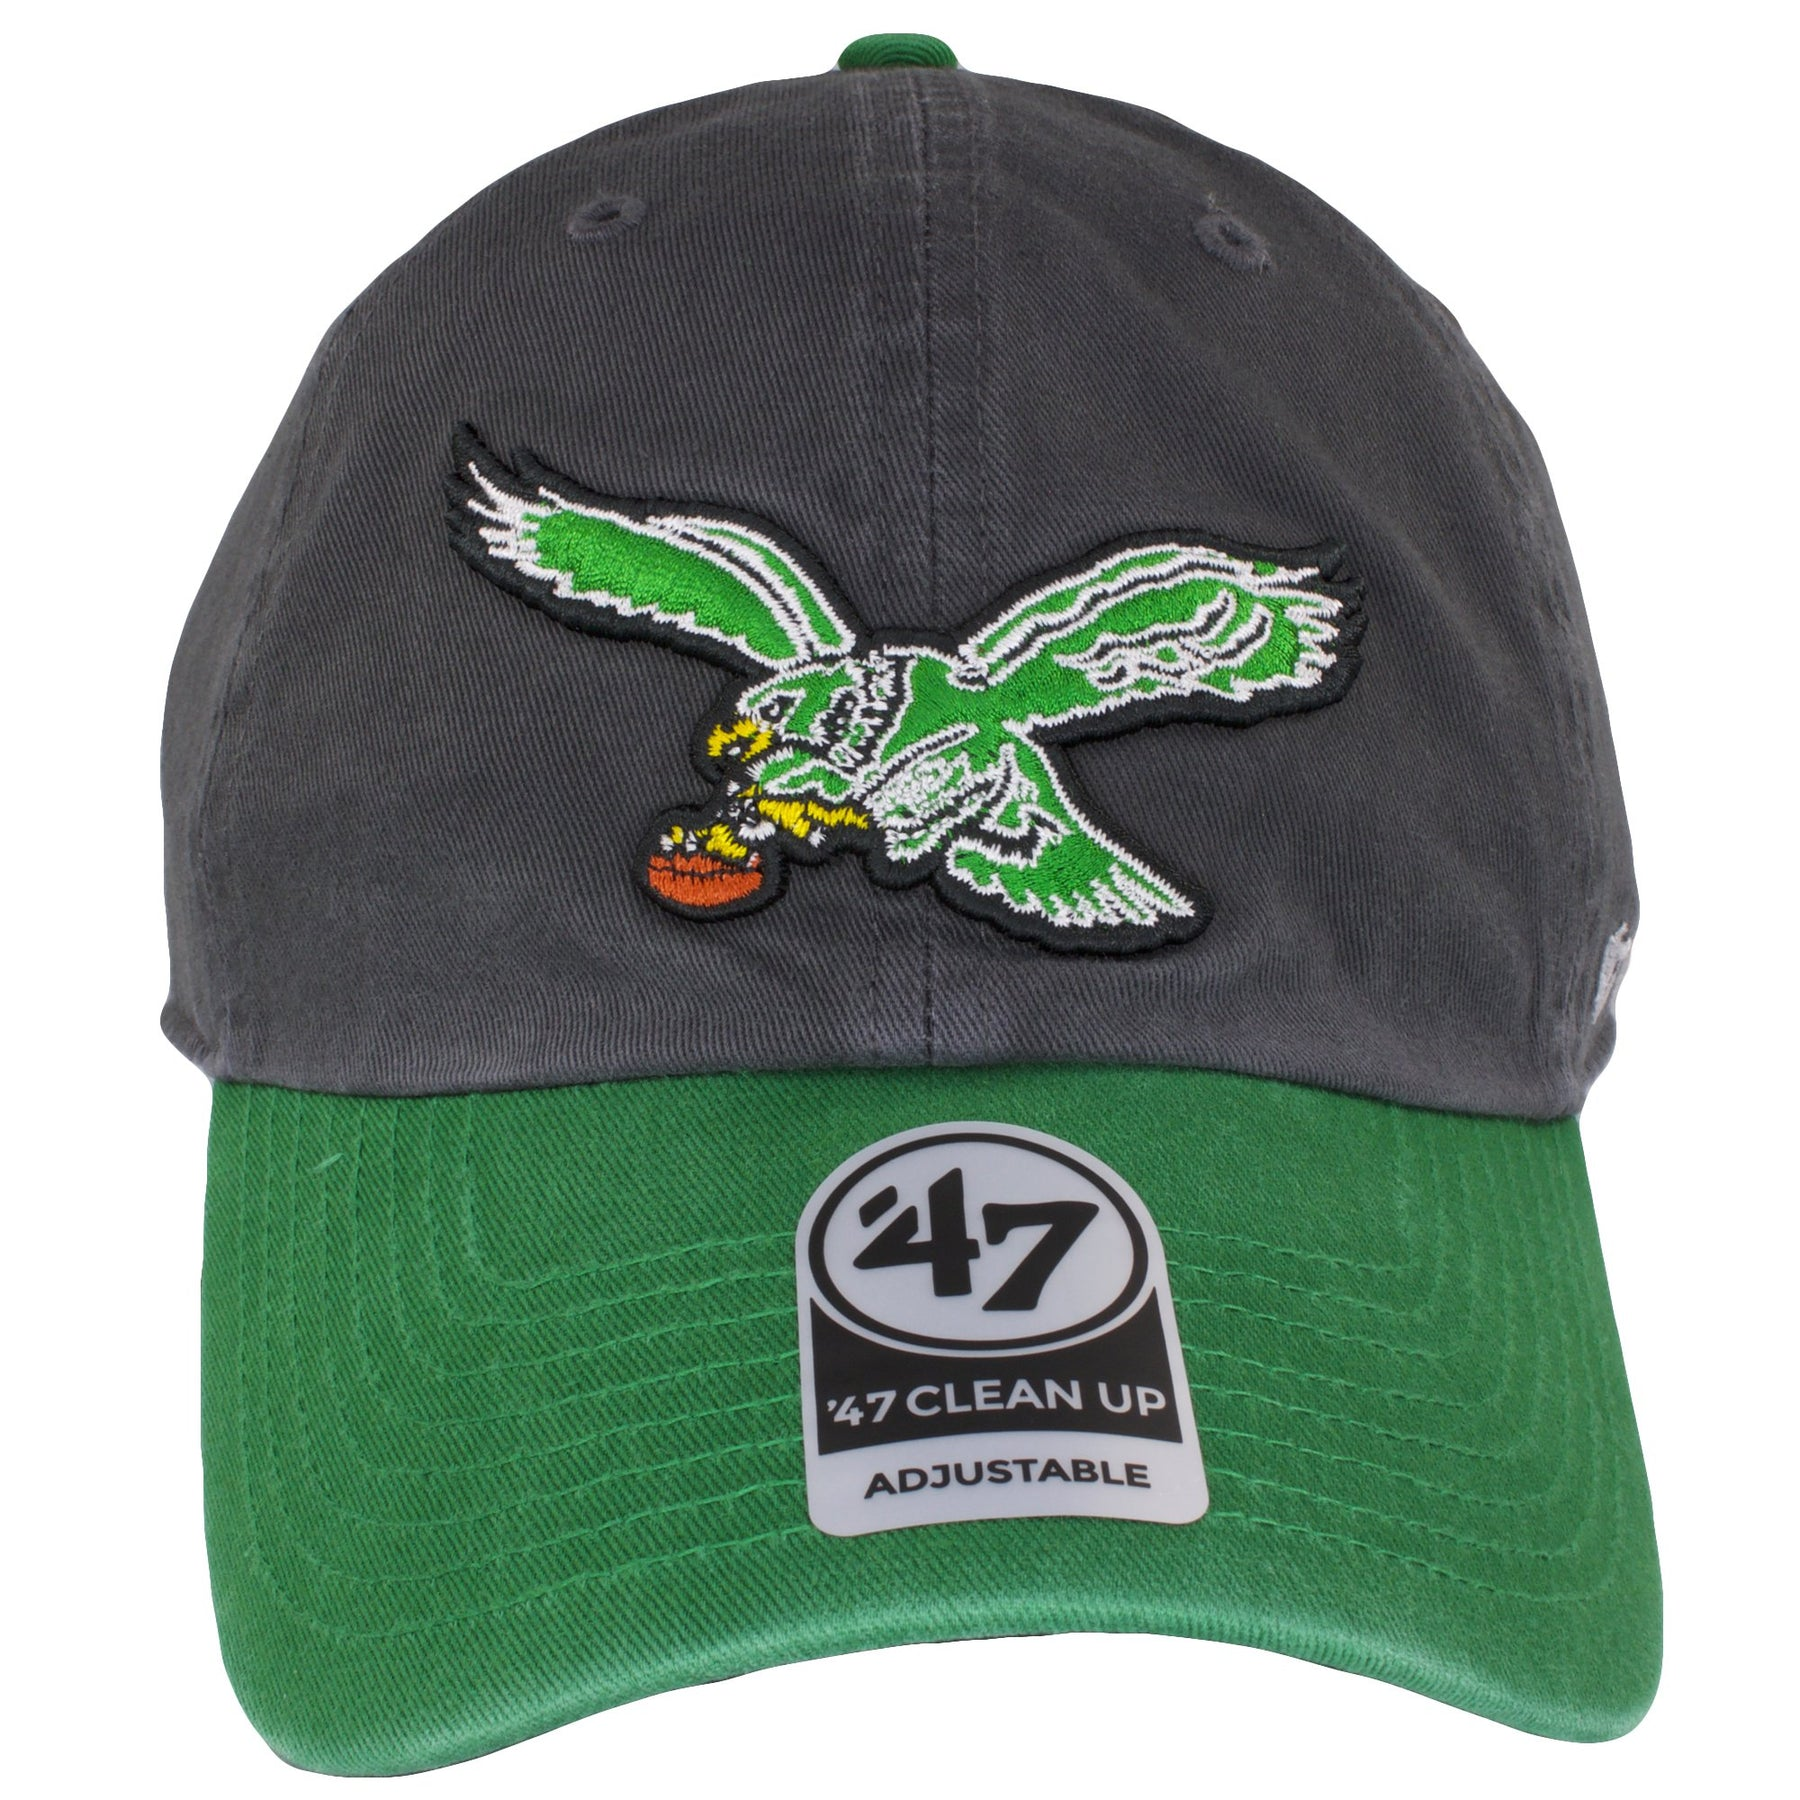 on the front of the philadelphia eagles throwback charcoal on kelly green  dad hat is a 30d20b3b5